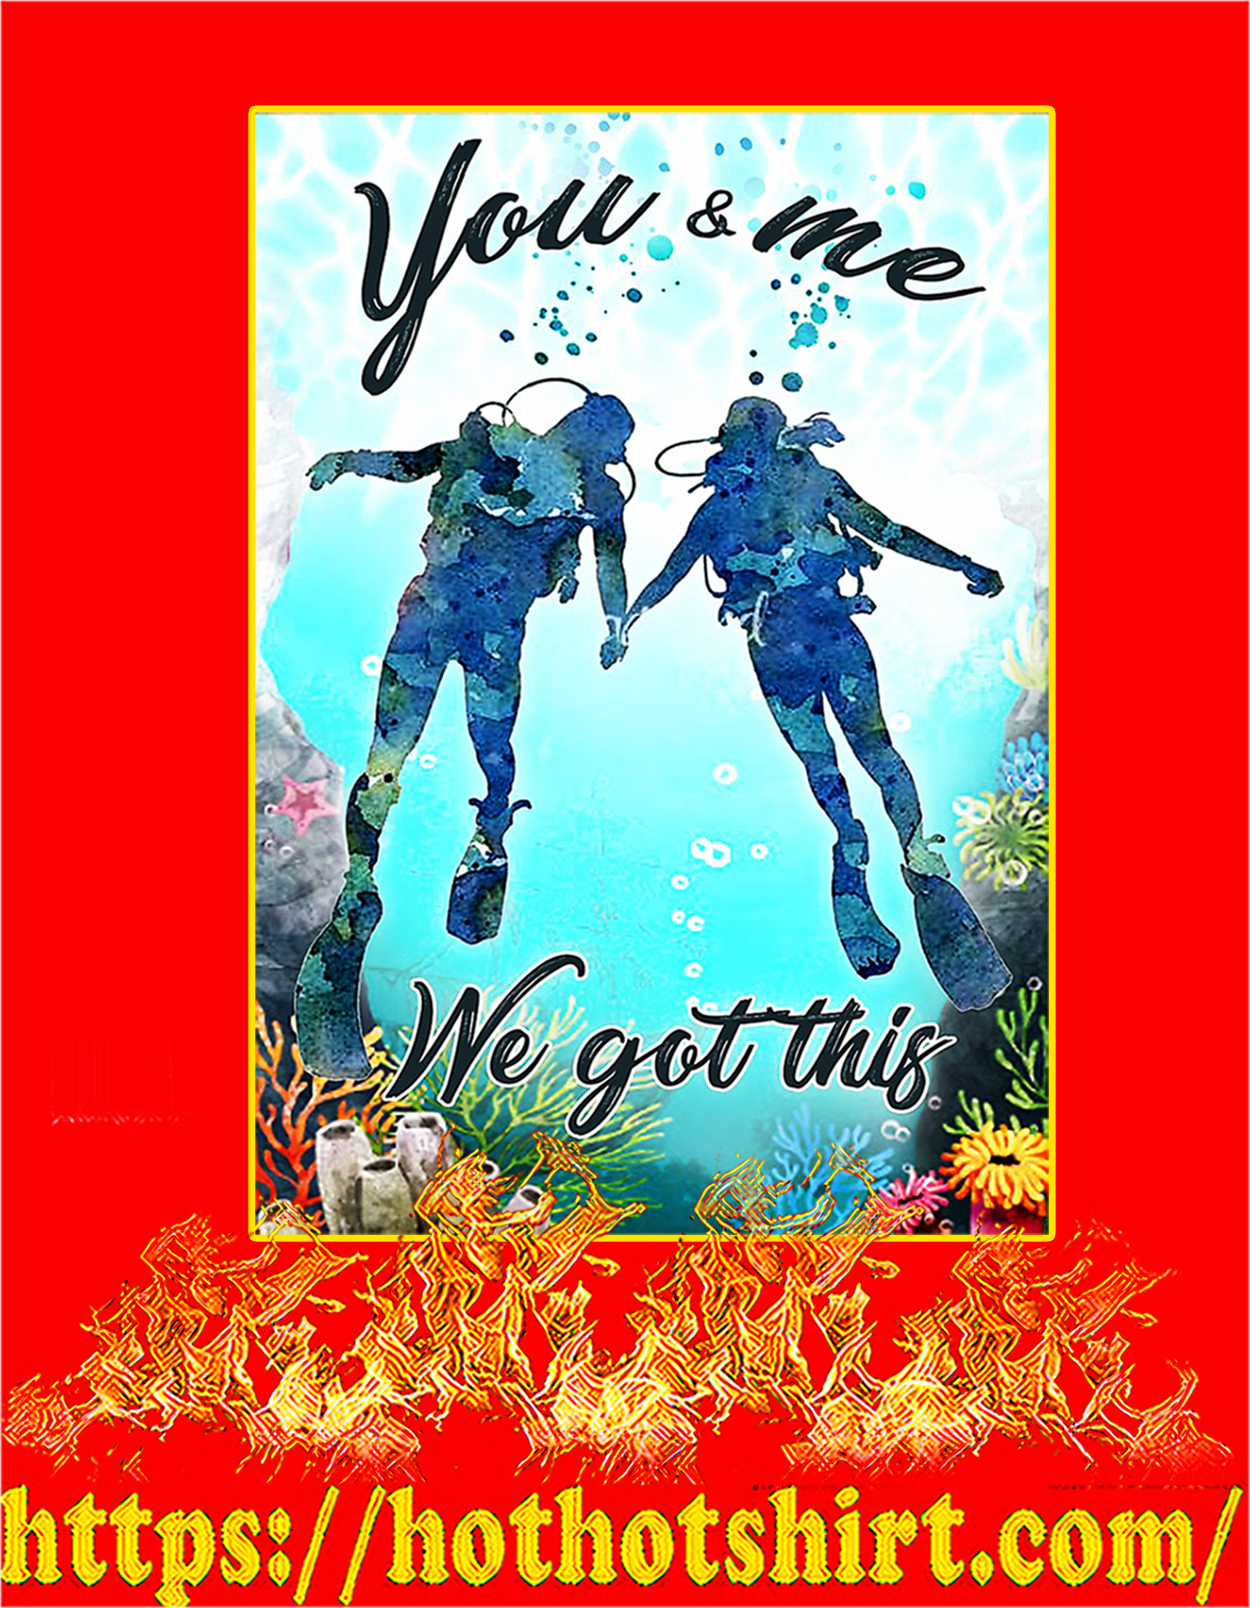 Scuba you and me we got this poster - A3